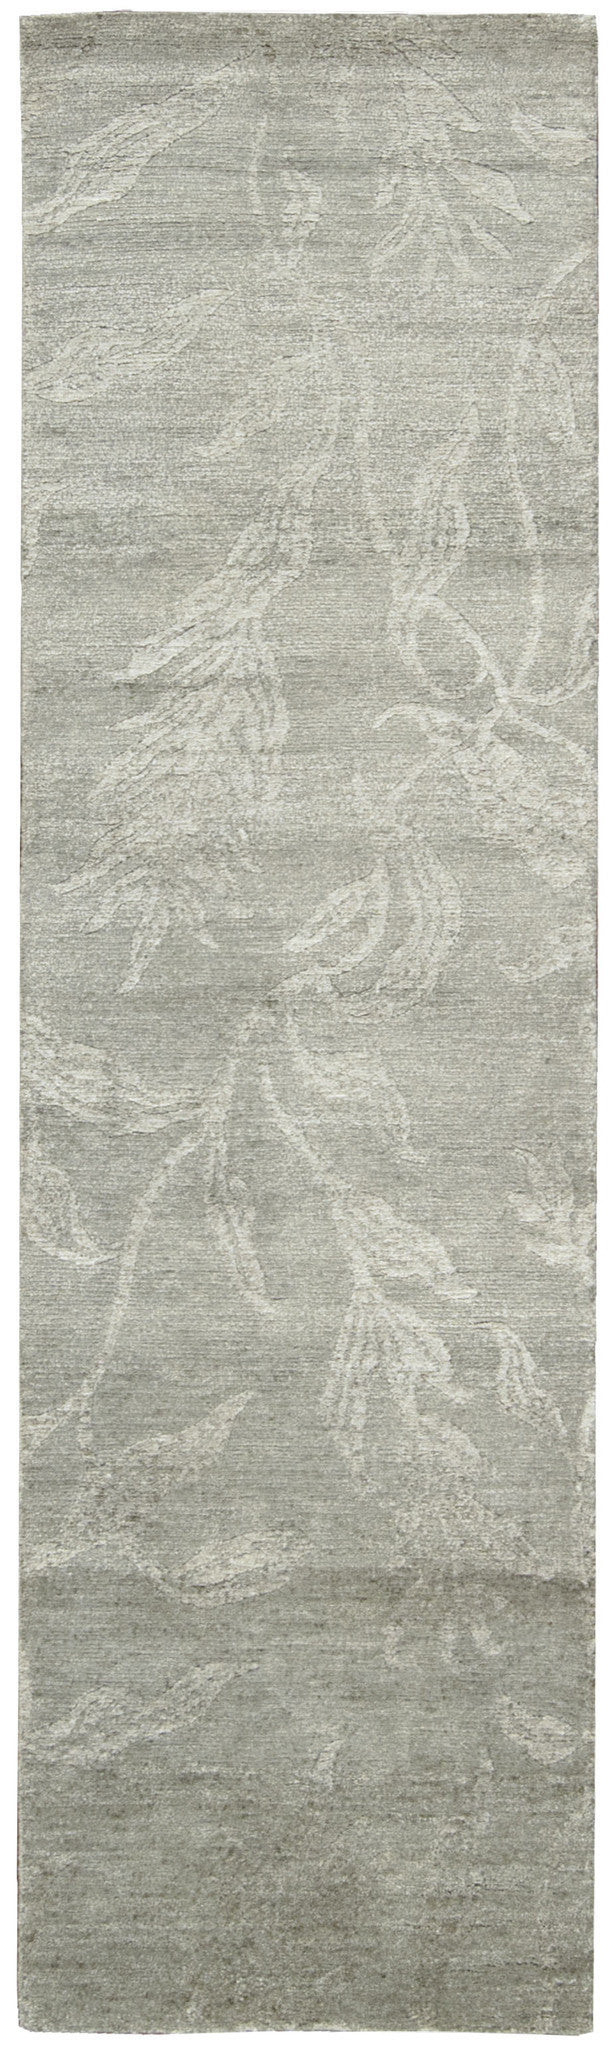 Nourison Silk Shadows Light Green Area Rug SHA01 LTG